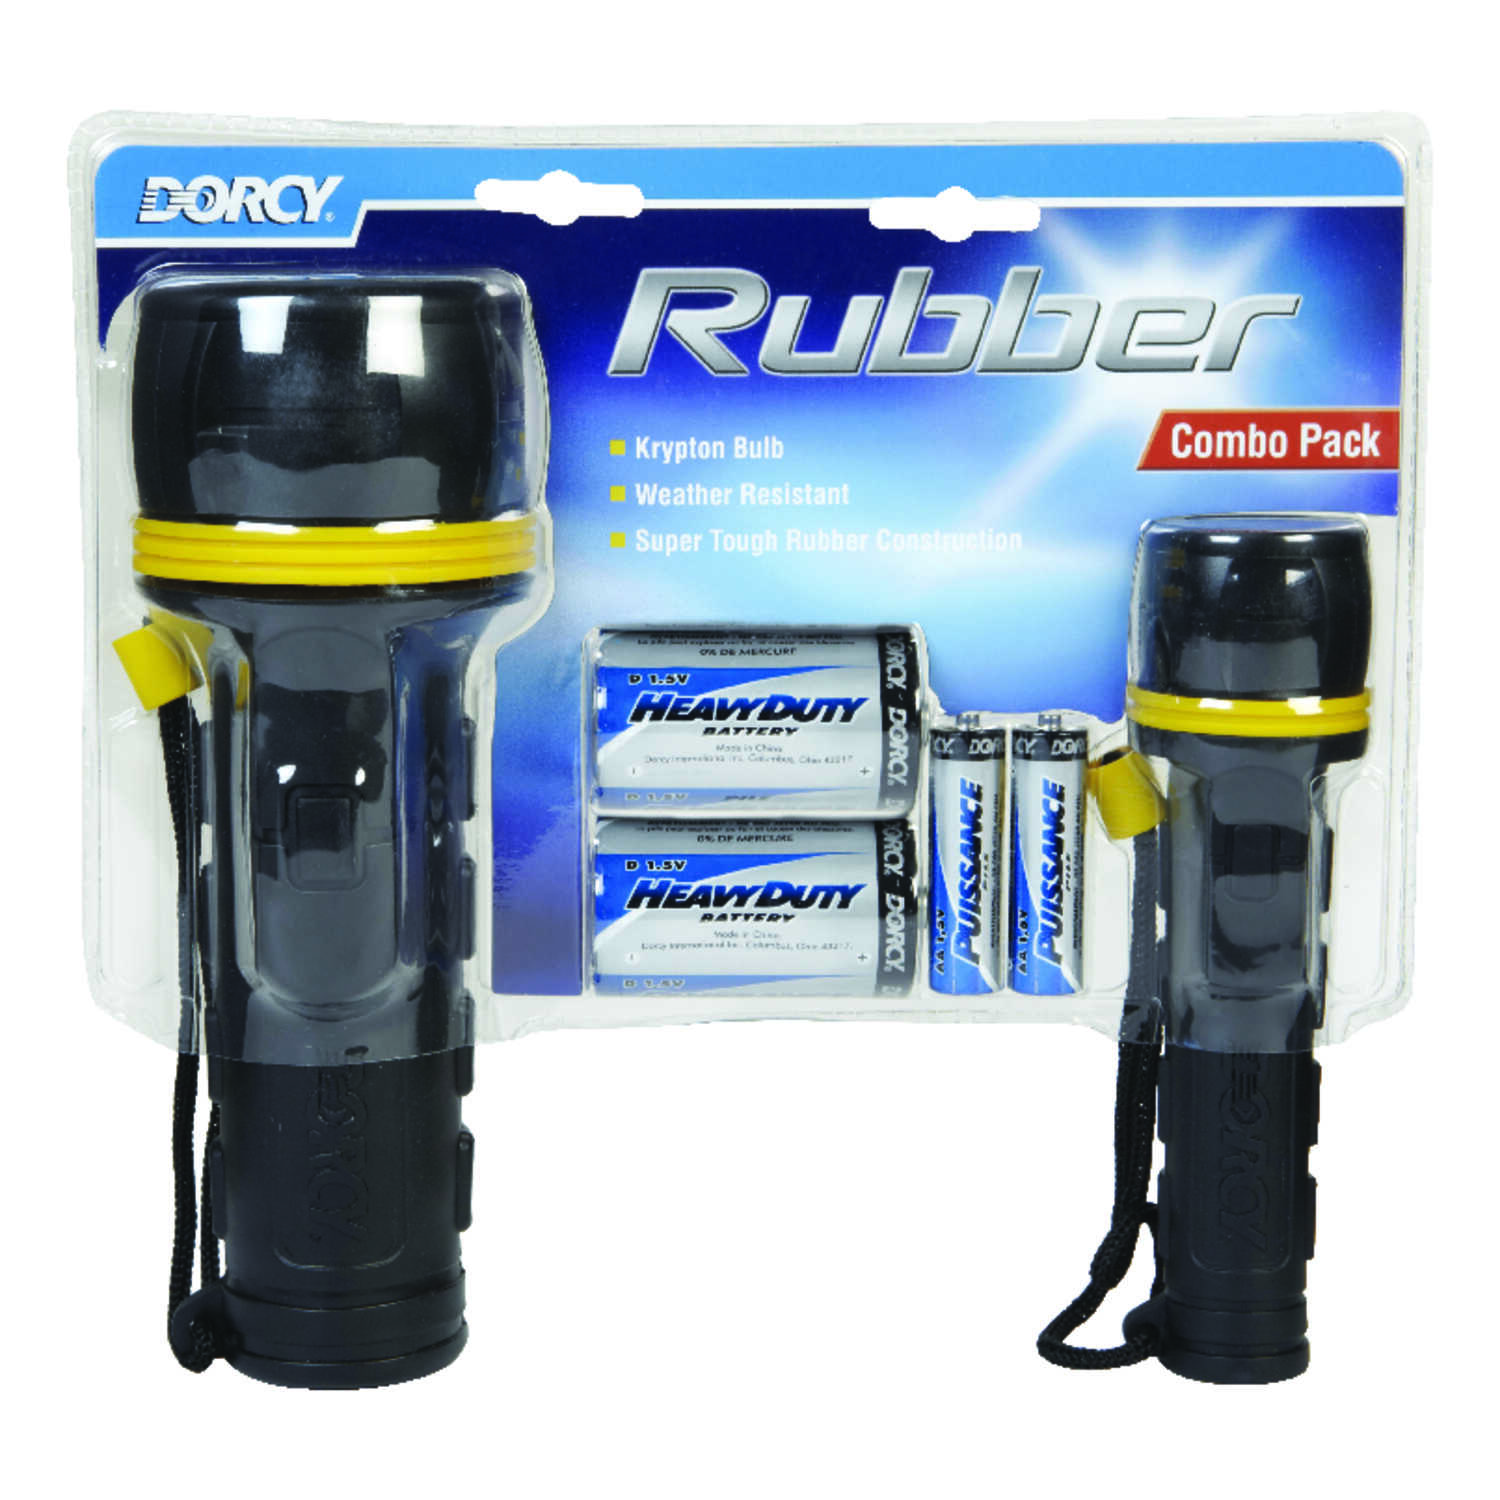 Dorcy  Rubber  Black  Krypton  Flashlight  AA/D